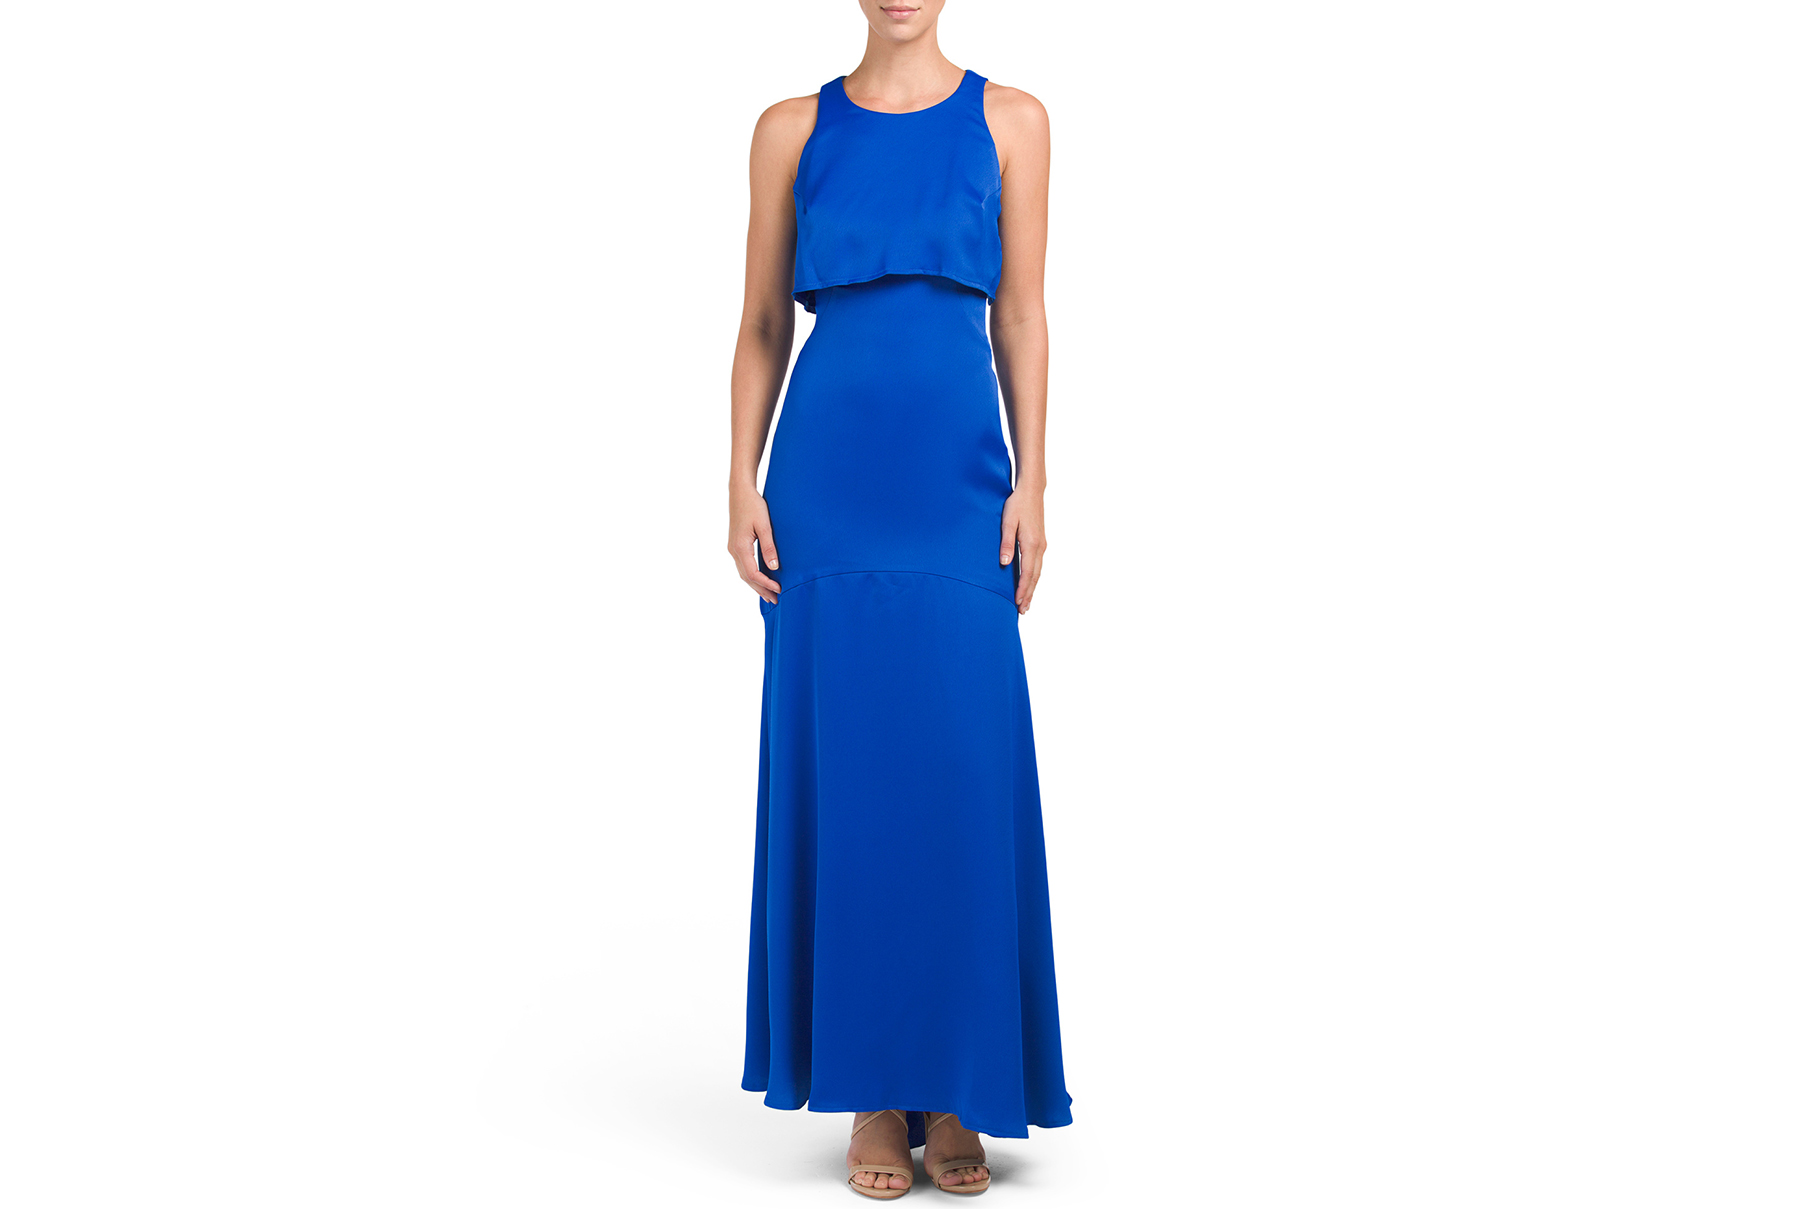 Nicole Miller New York Popover Cutout Back Gown